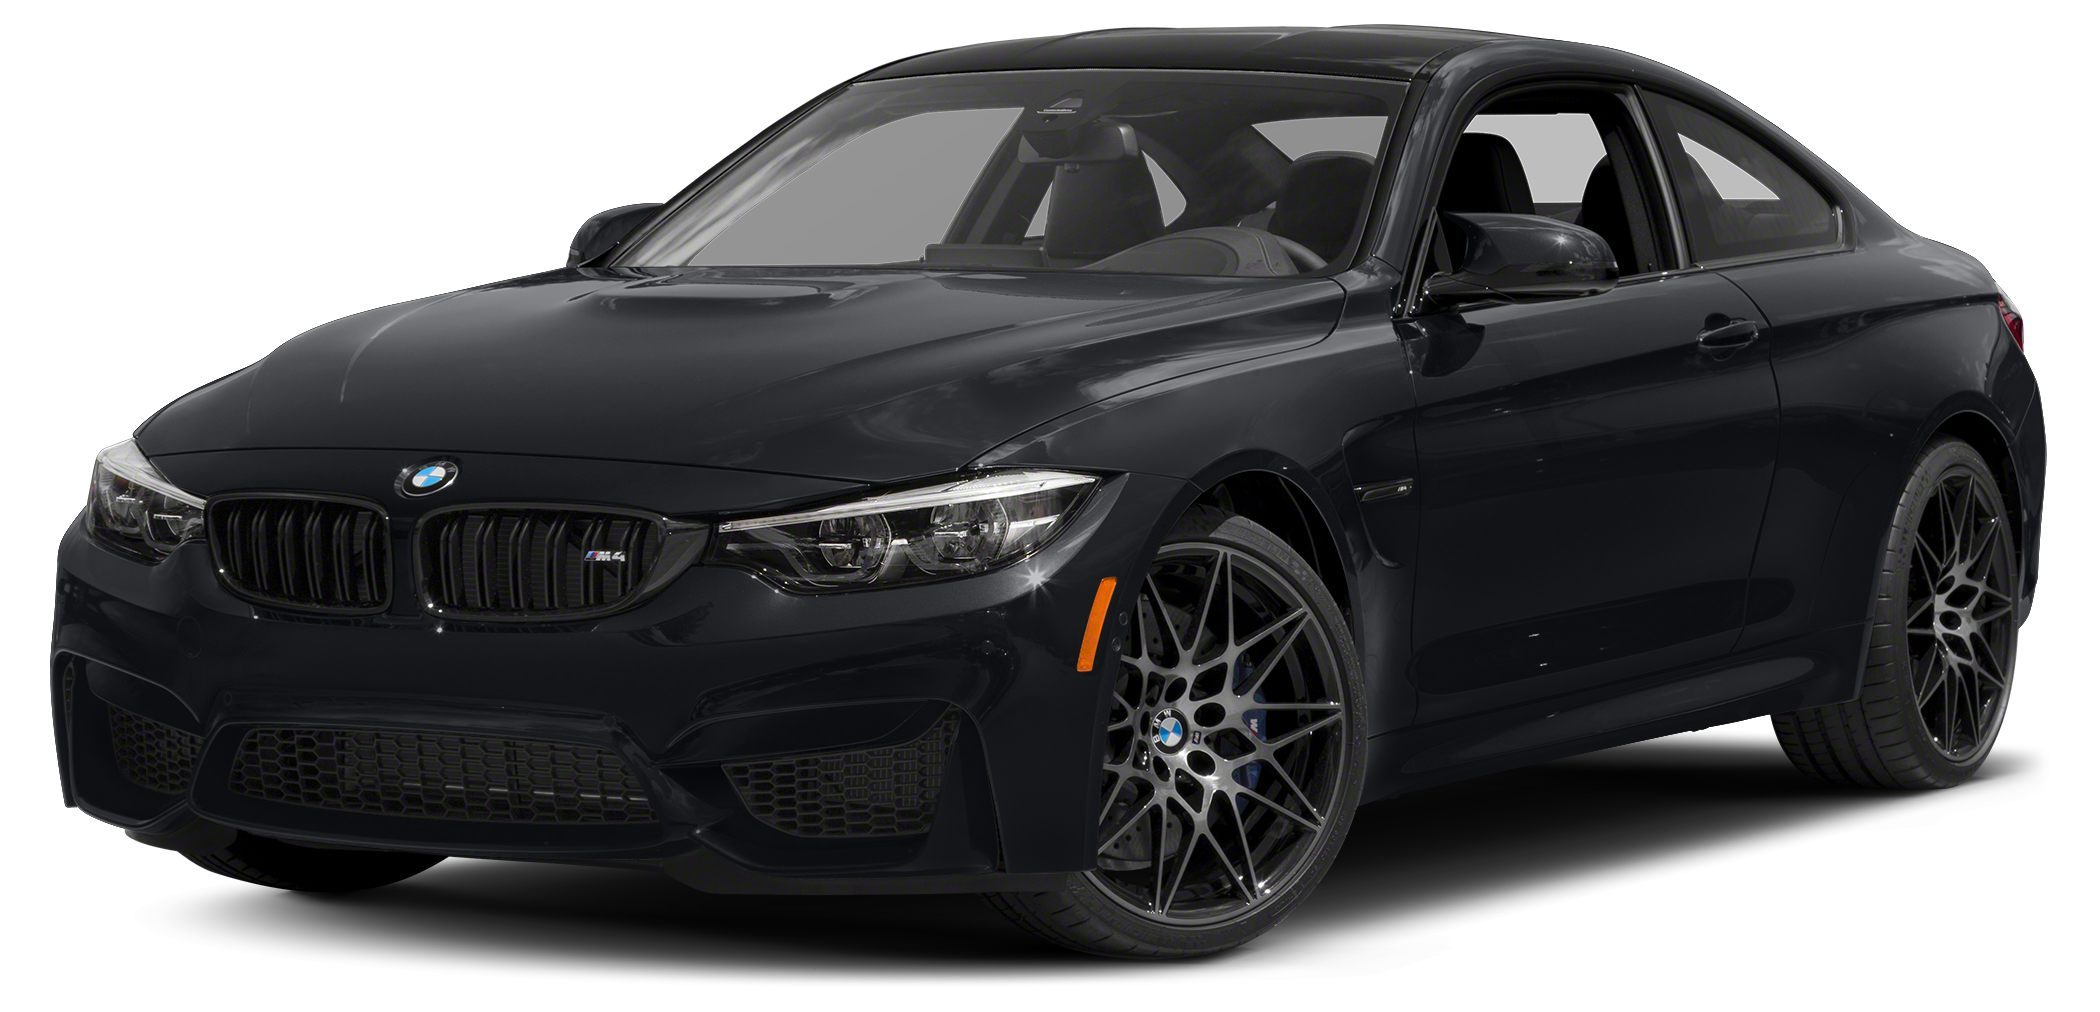 Bmw M4 In Houston TX For Sale ▷ Used Cars Buysellsearch